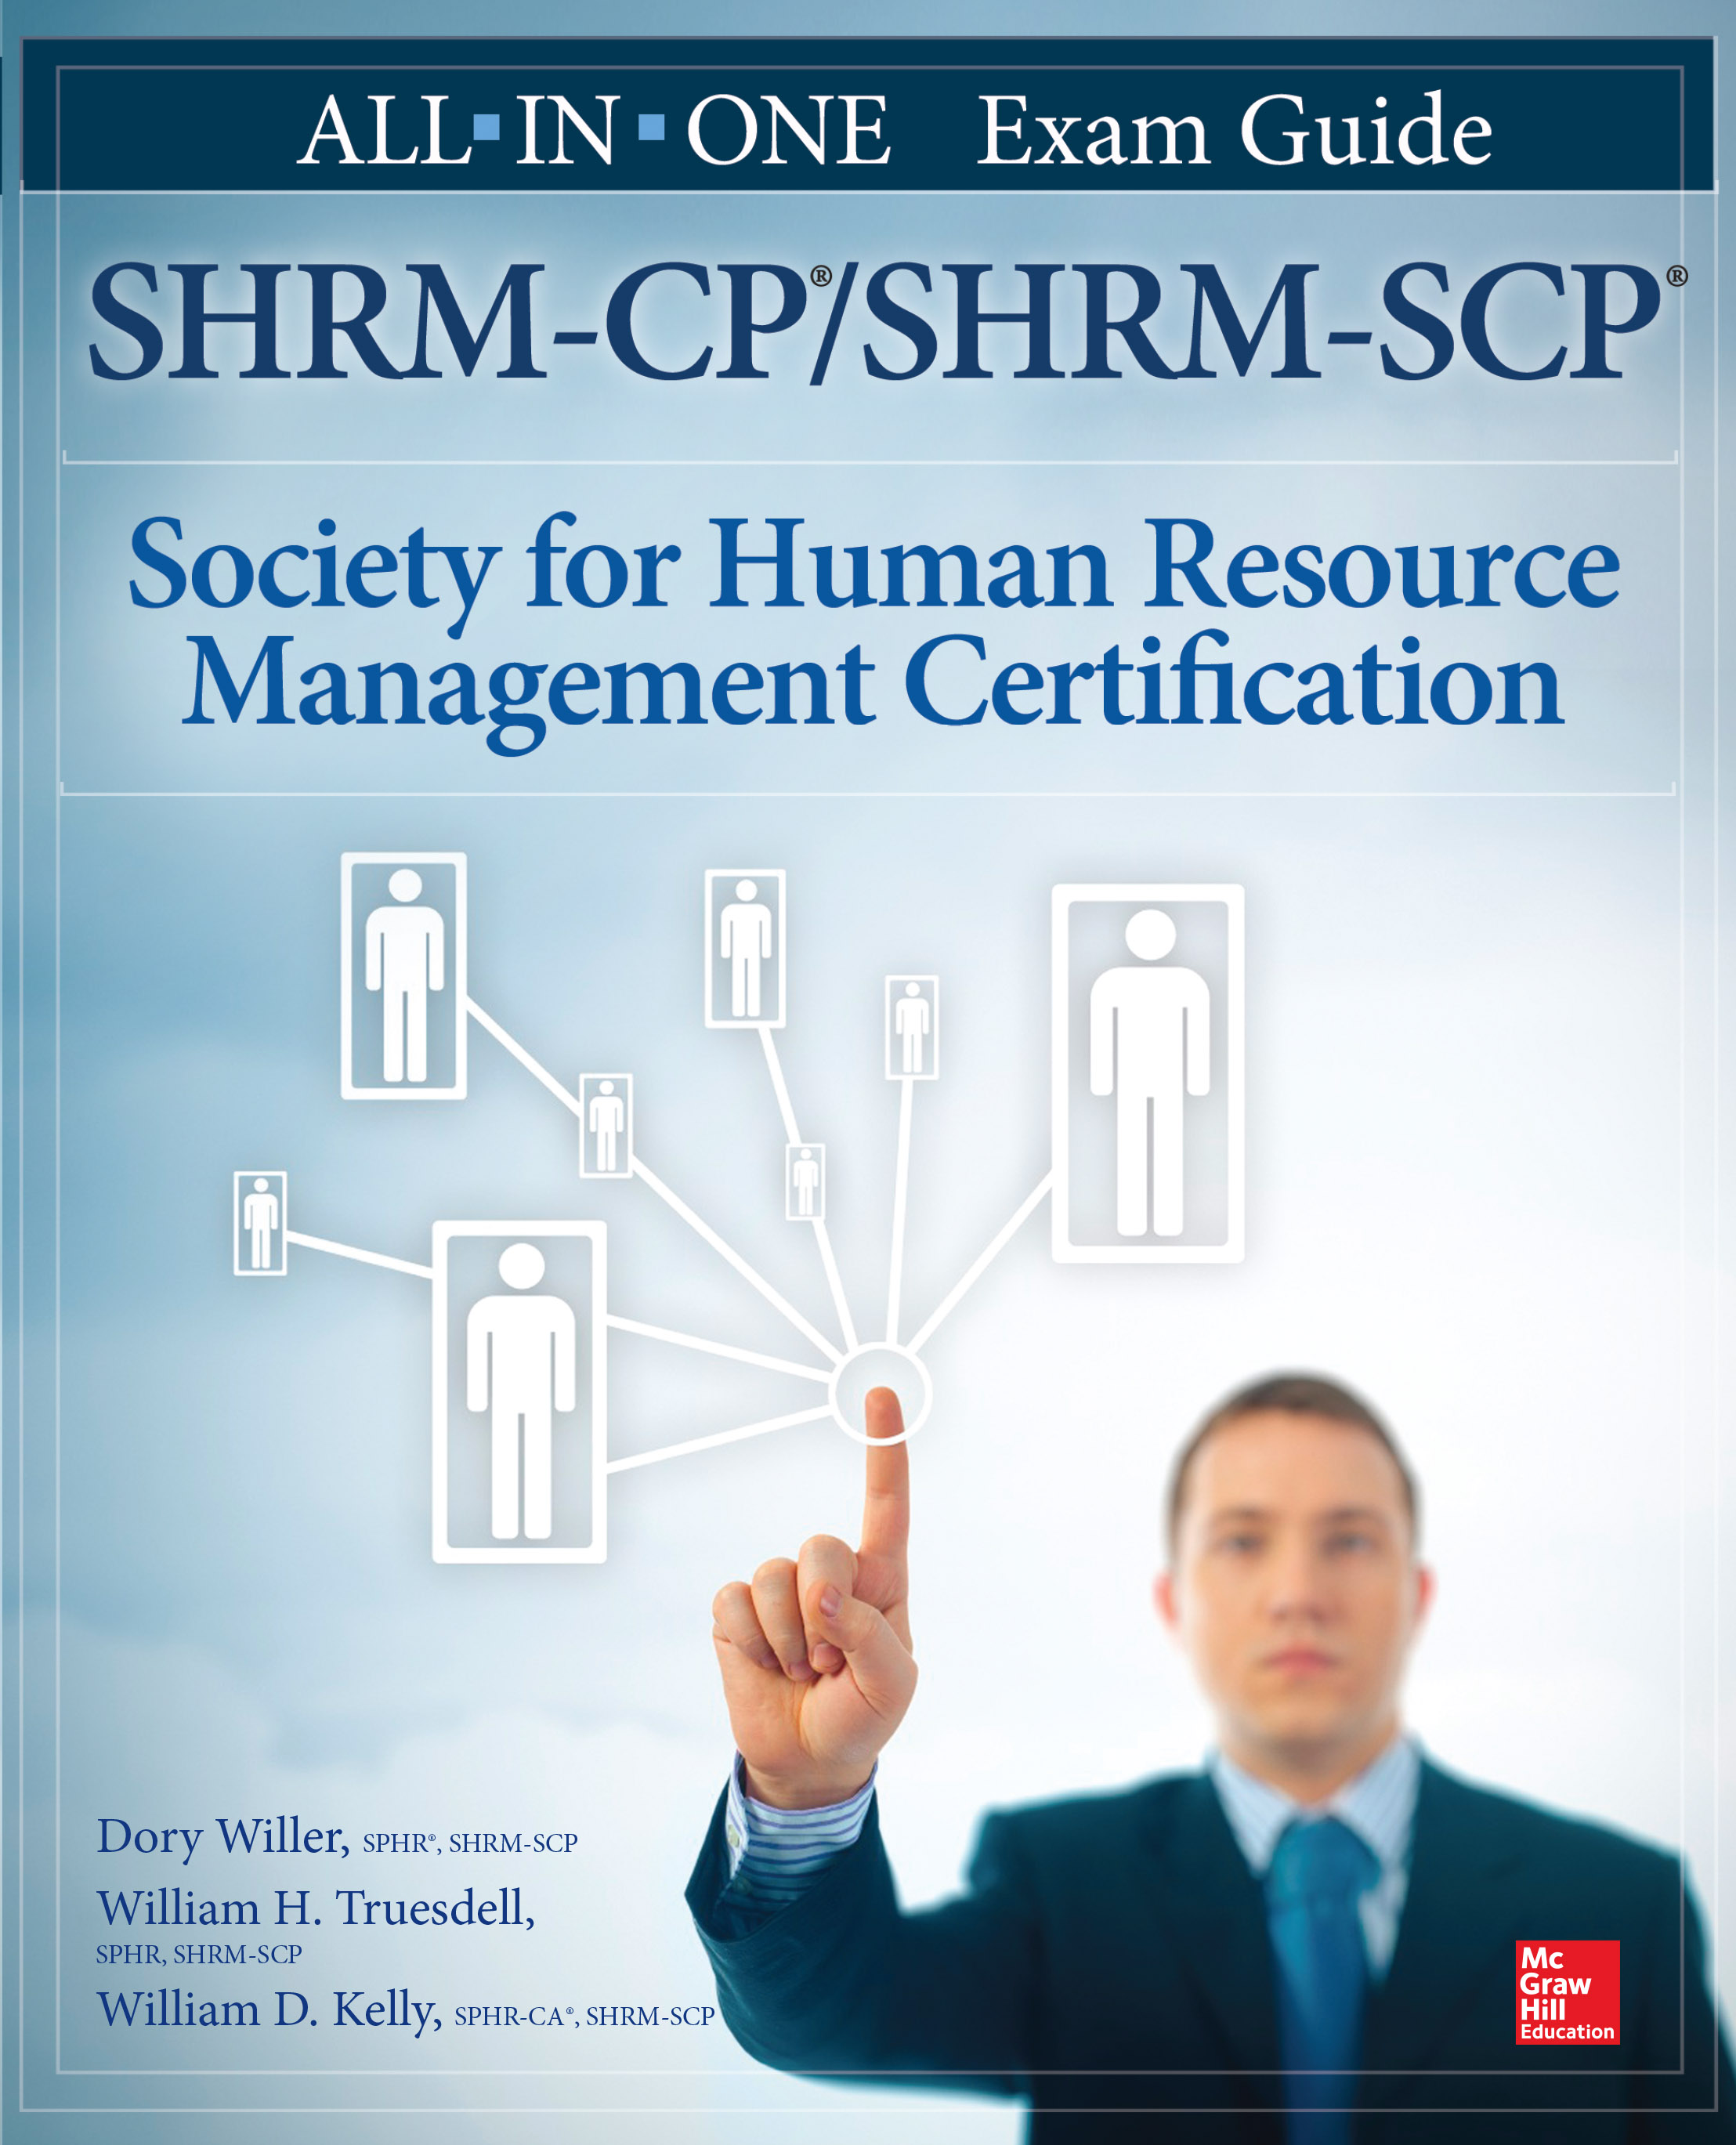 Download Ebook SHRM-CP/SHRM-SCP Certification All-in-One Exam Guide by Dory Willer Pdf